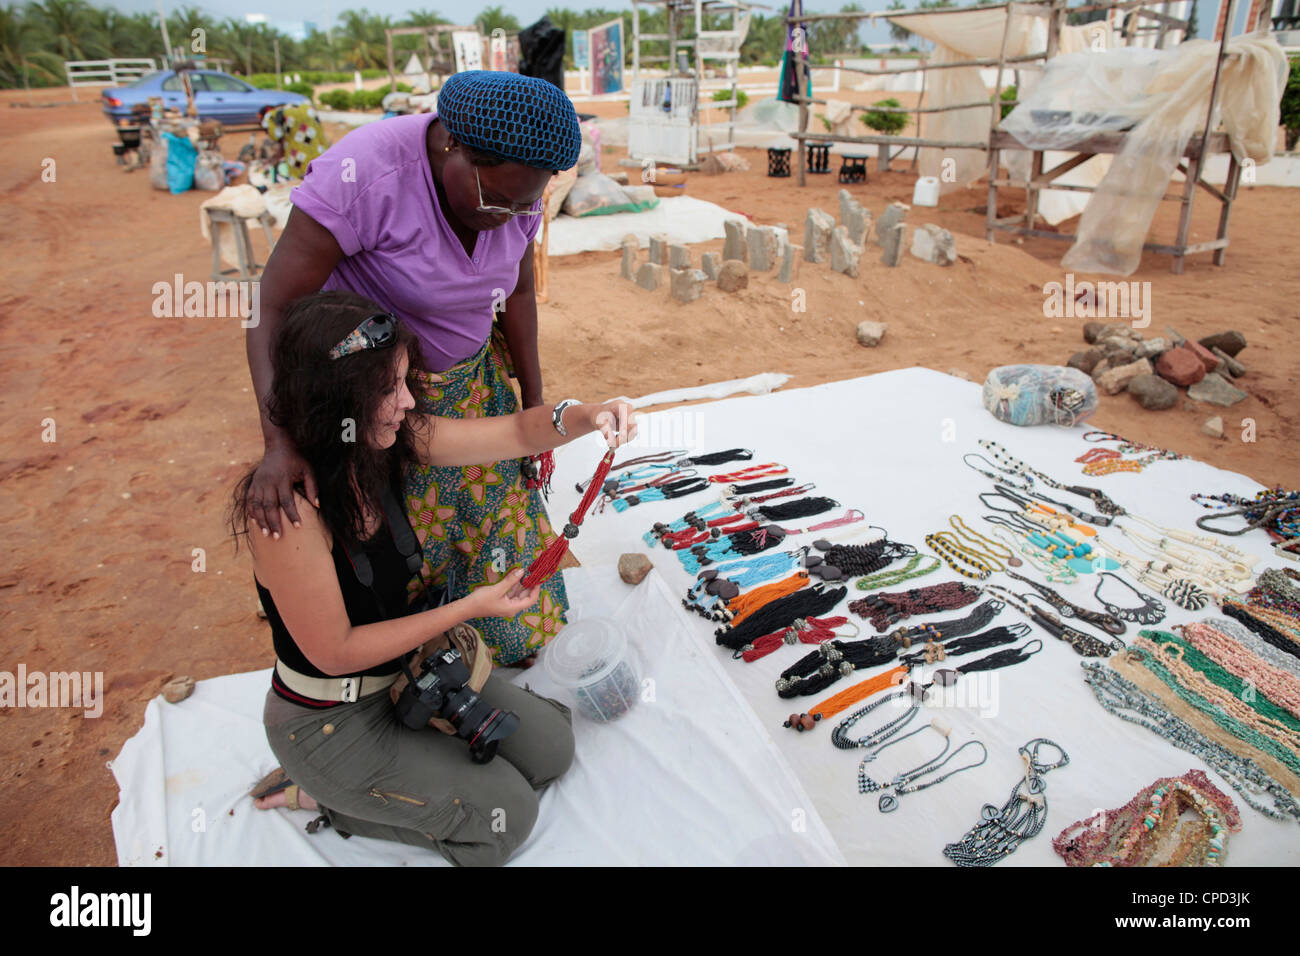 Woman buying souvenirs, Ouidah, Benin, West Africa, Africa - Stock Image